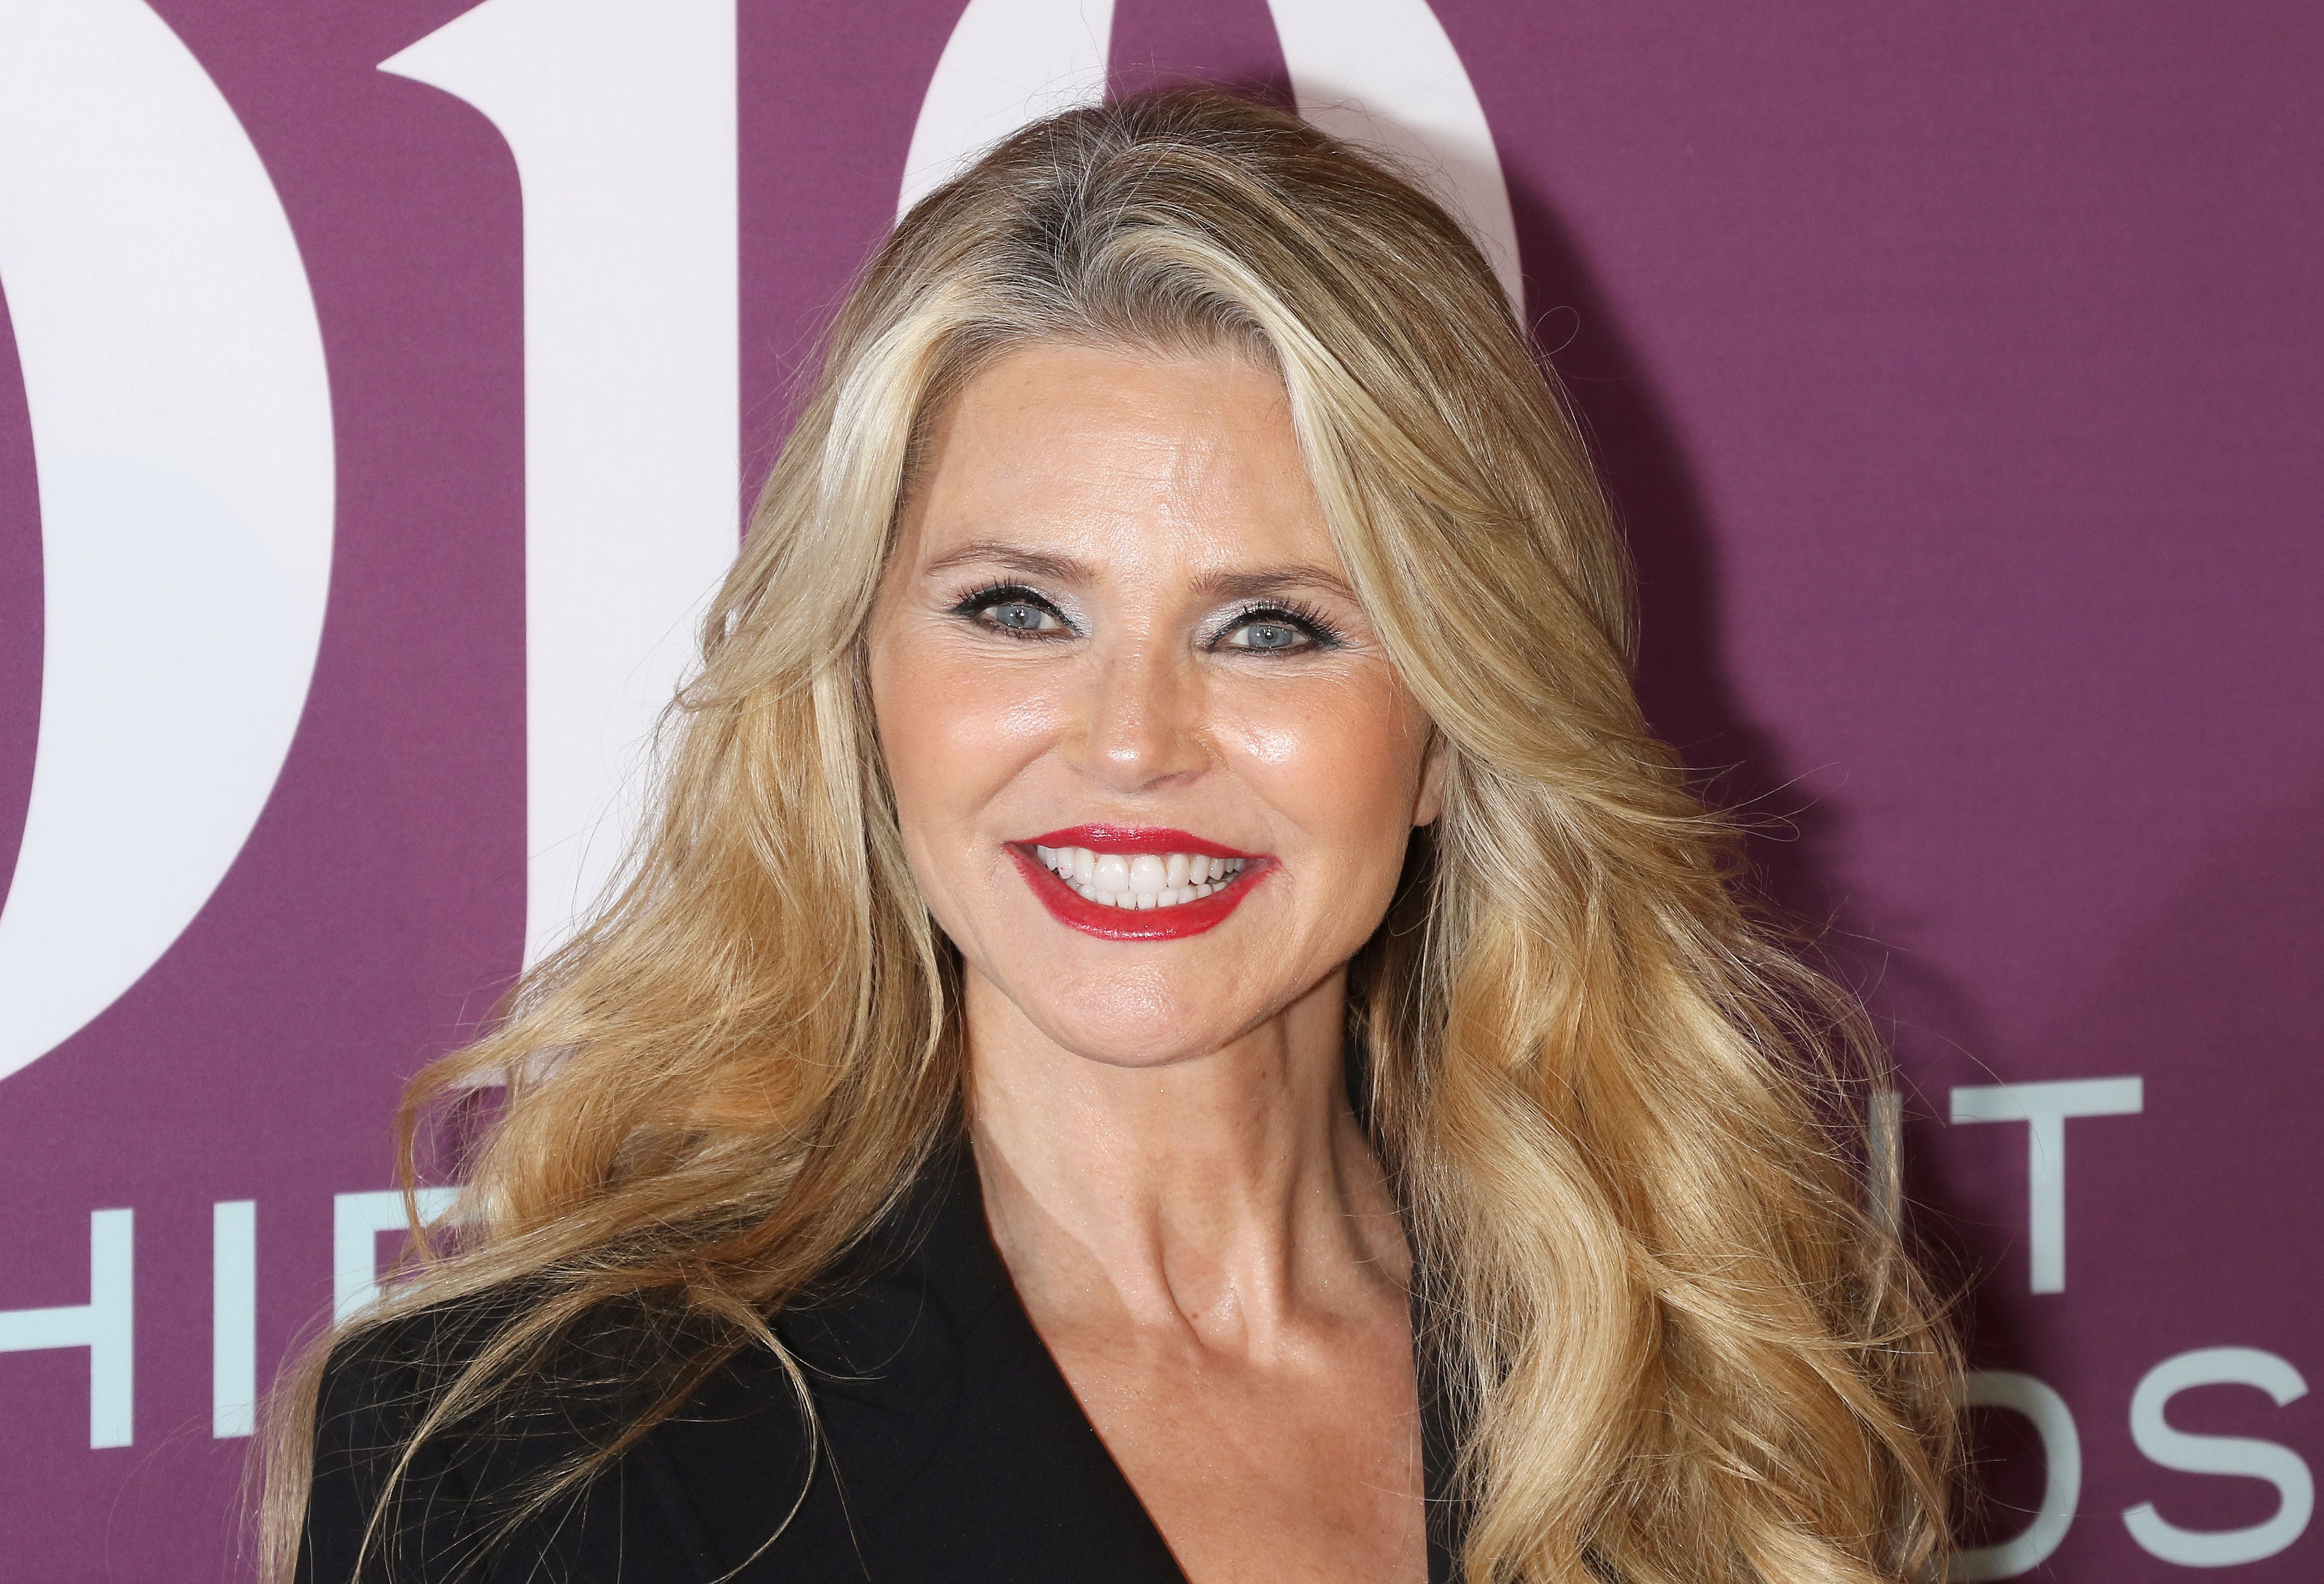 Christie Brinkley at the 2019 FN Achievement Awards at IAC Building on December 03, 2019 | Photo: Getty Images